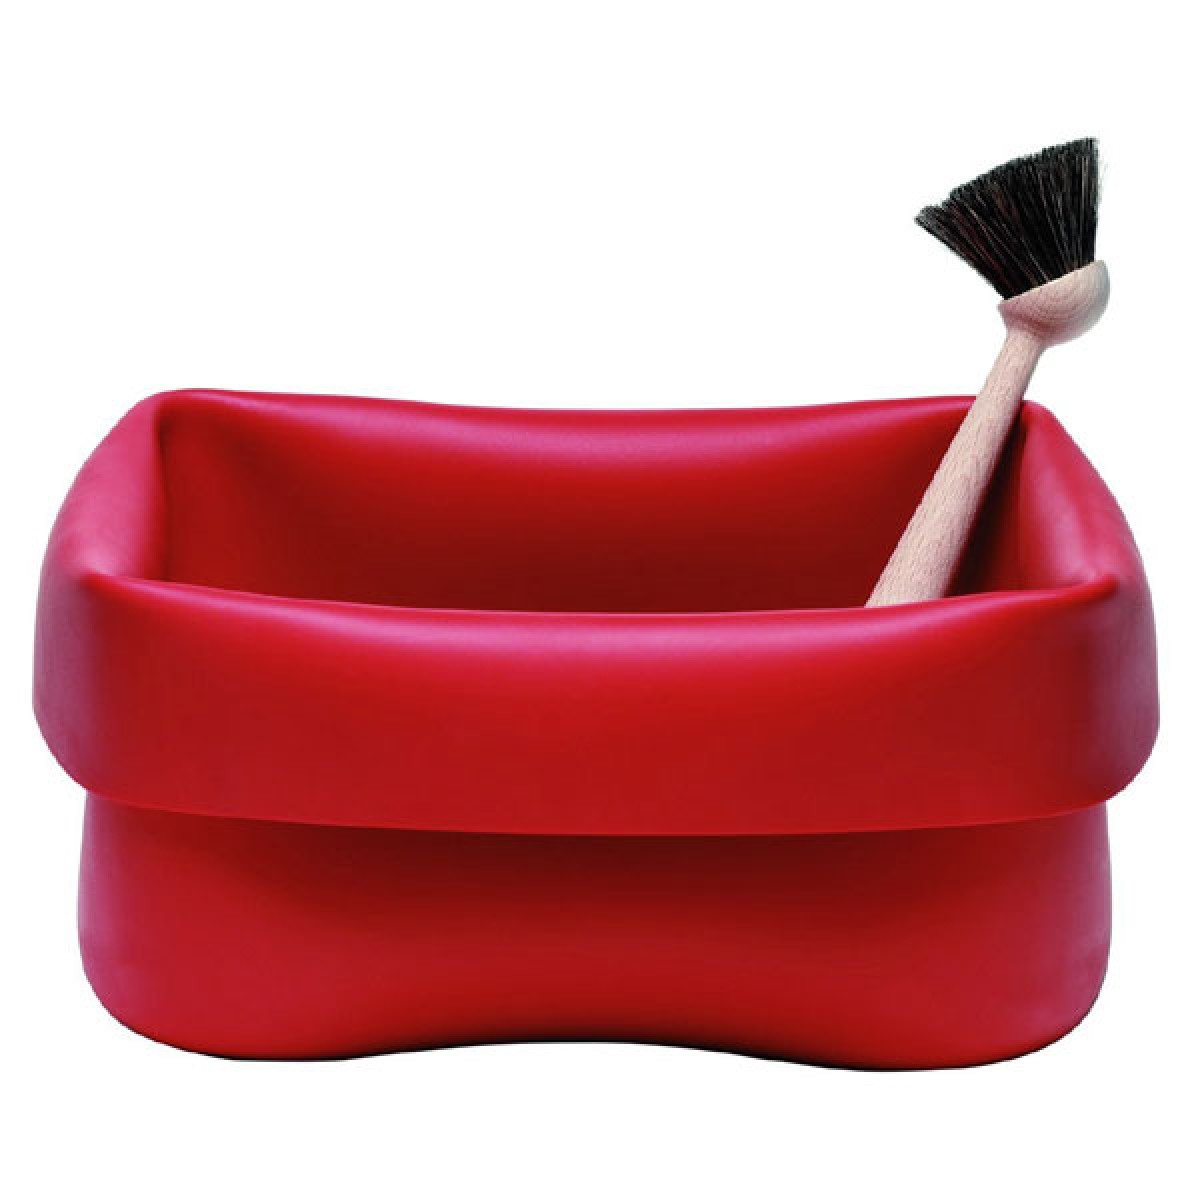 modern funky kitchen accessories red candy